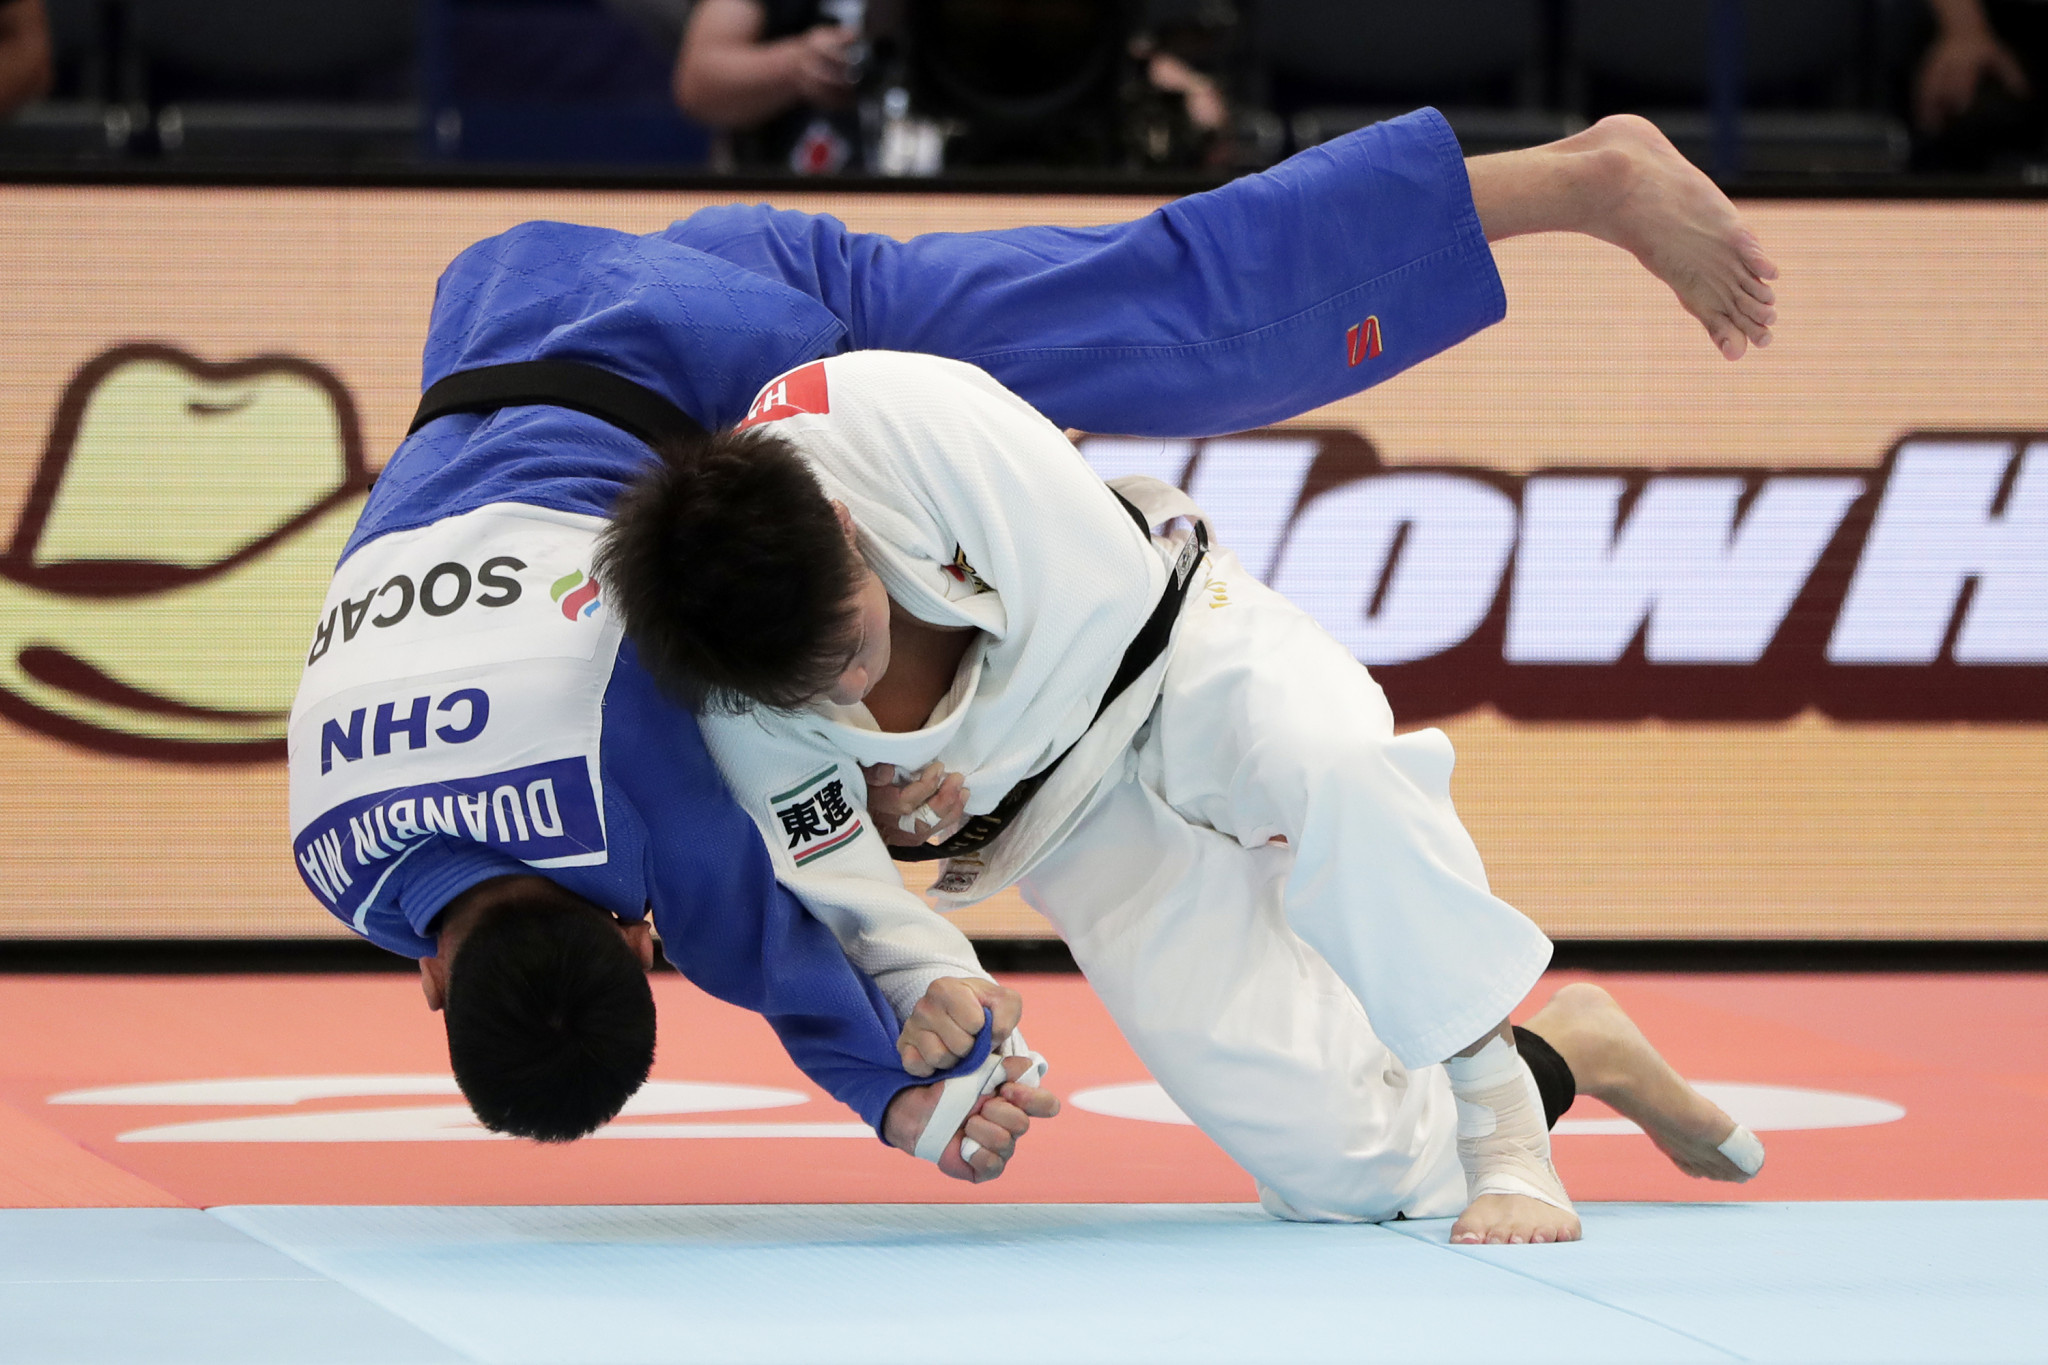 Chinese judoka won't be in Paris ©Getty Images